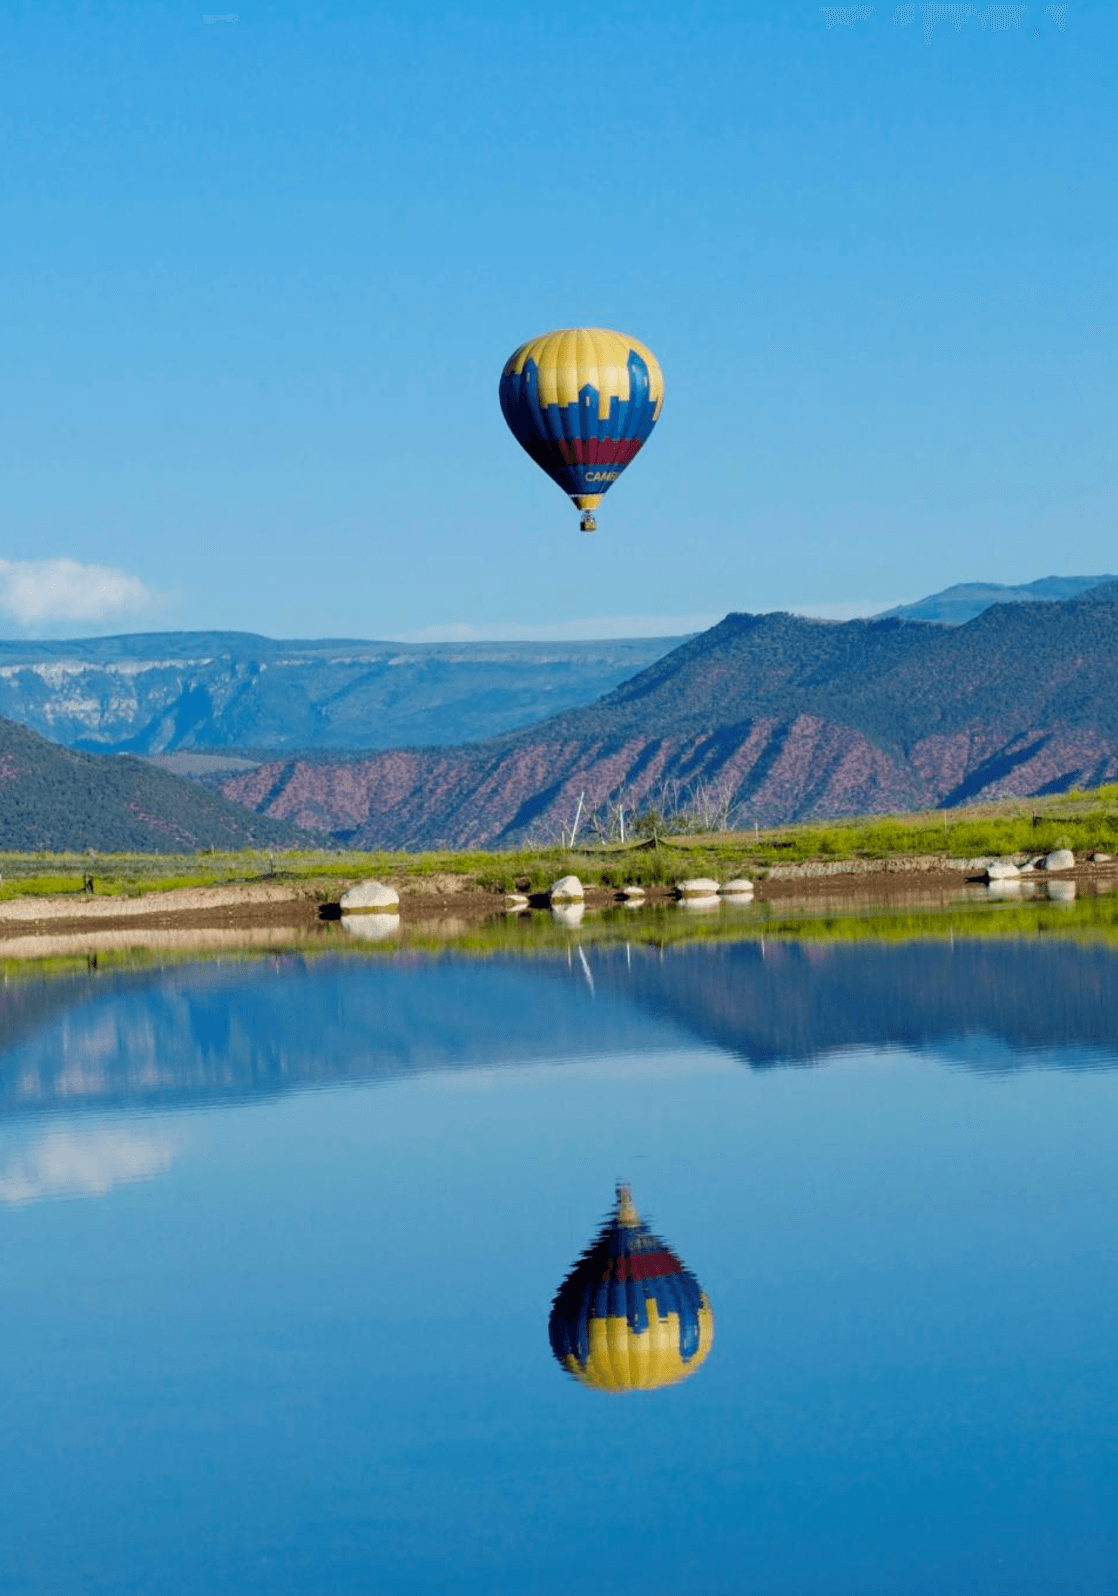 Camelot hot air balloon ride in Vail during summer